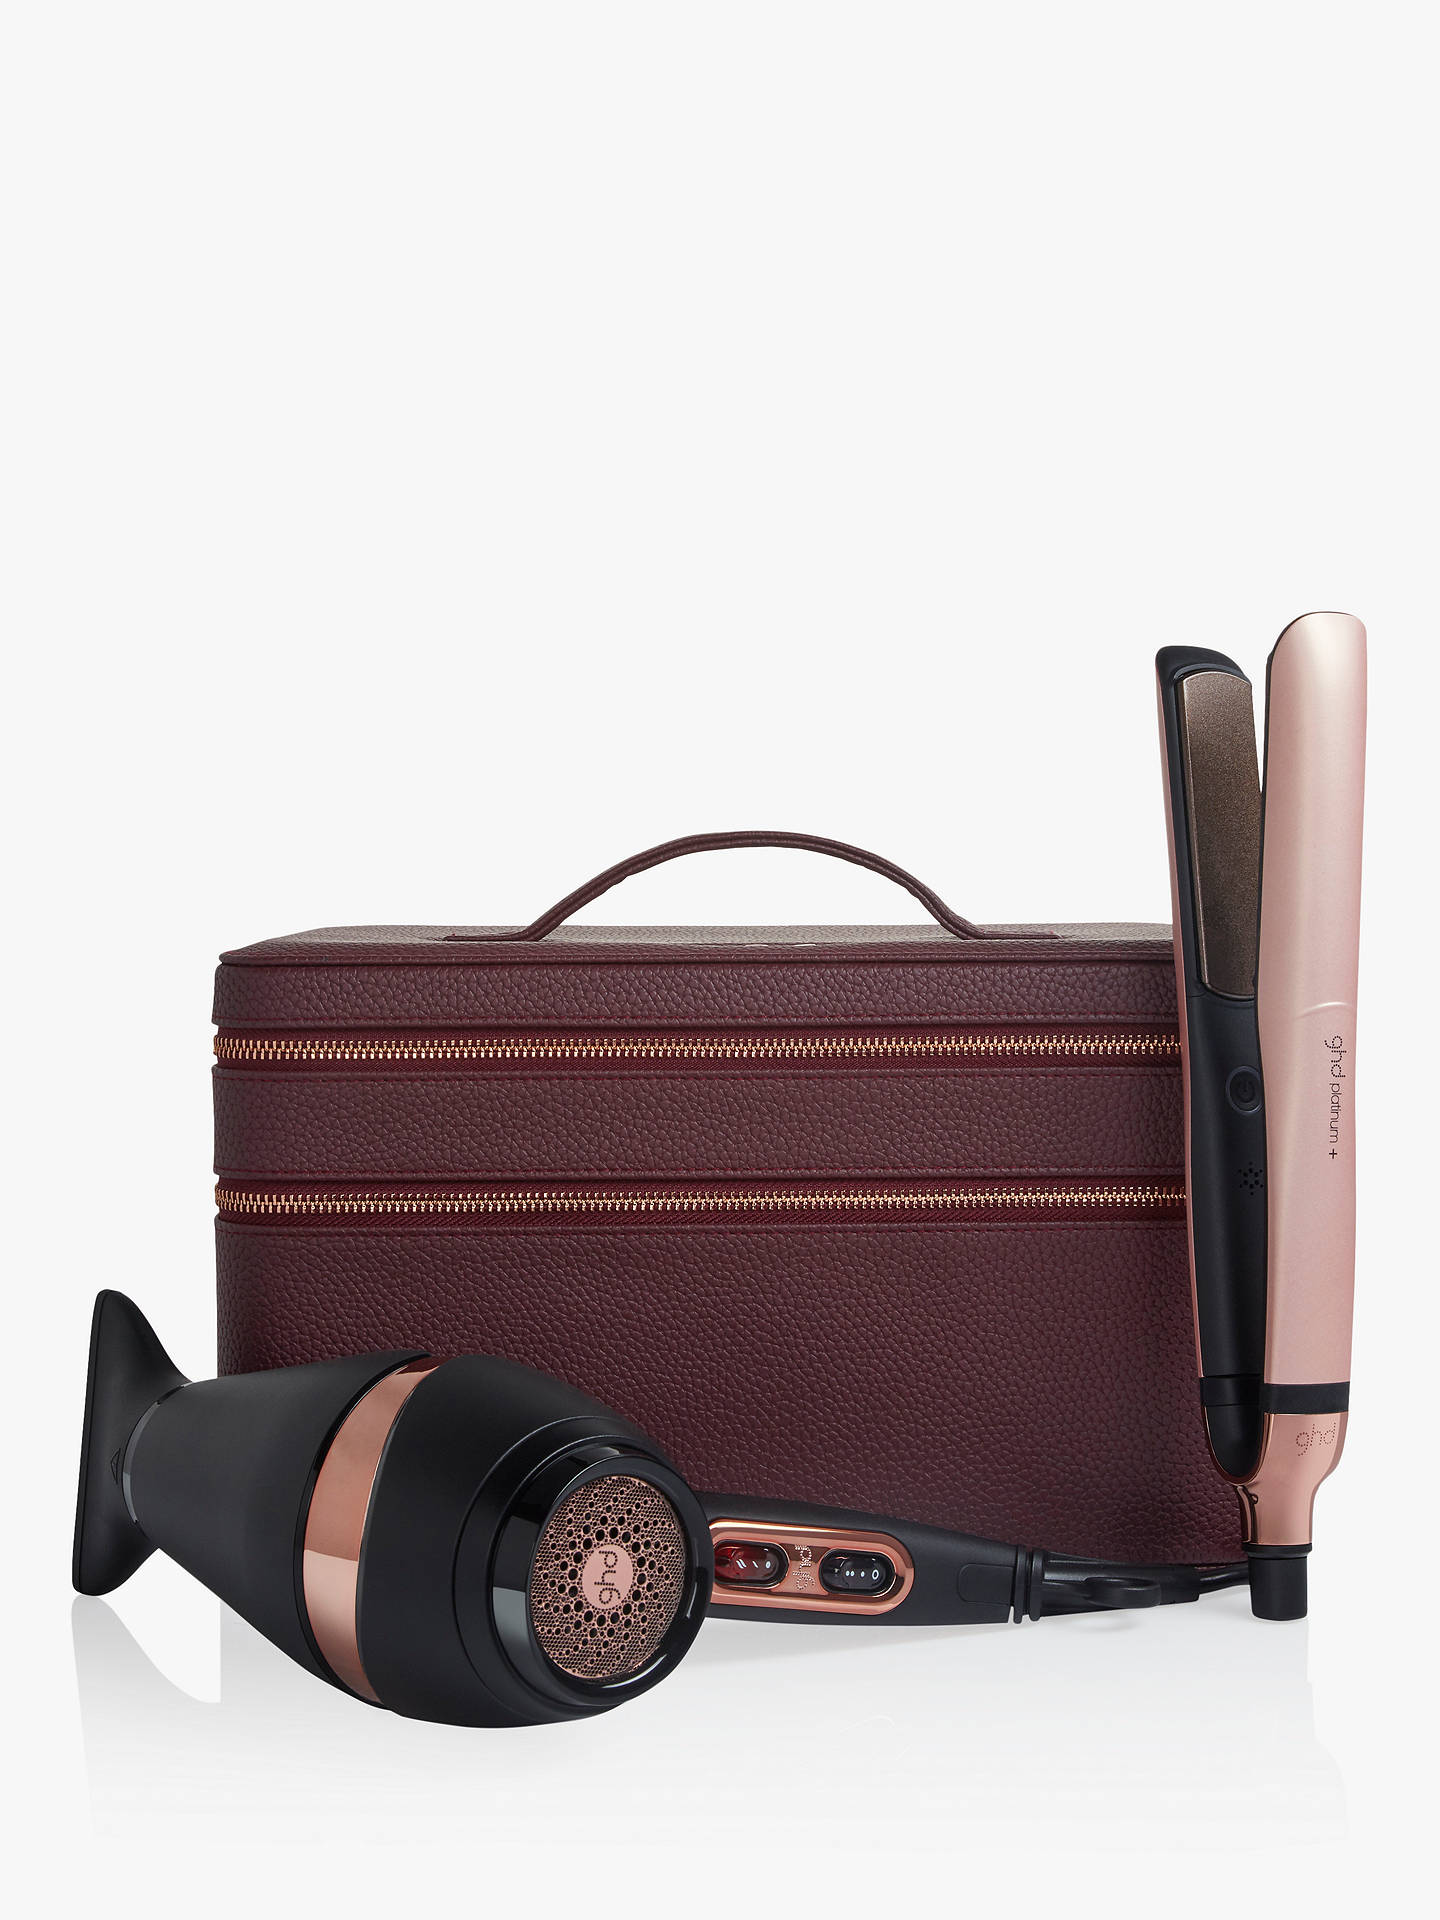 Buy ghd Platinum+® Styler and Air® Hair Dryer Deluxe Gift Set, Black/Rose Gold Online at johnlewis.com